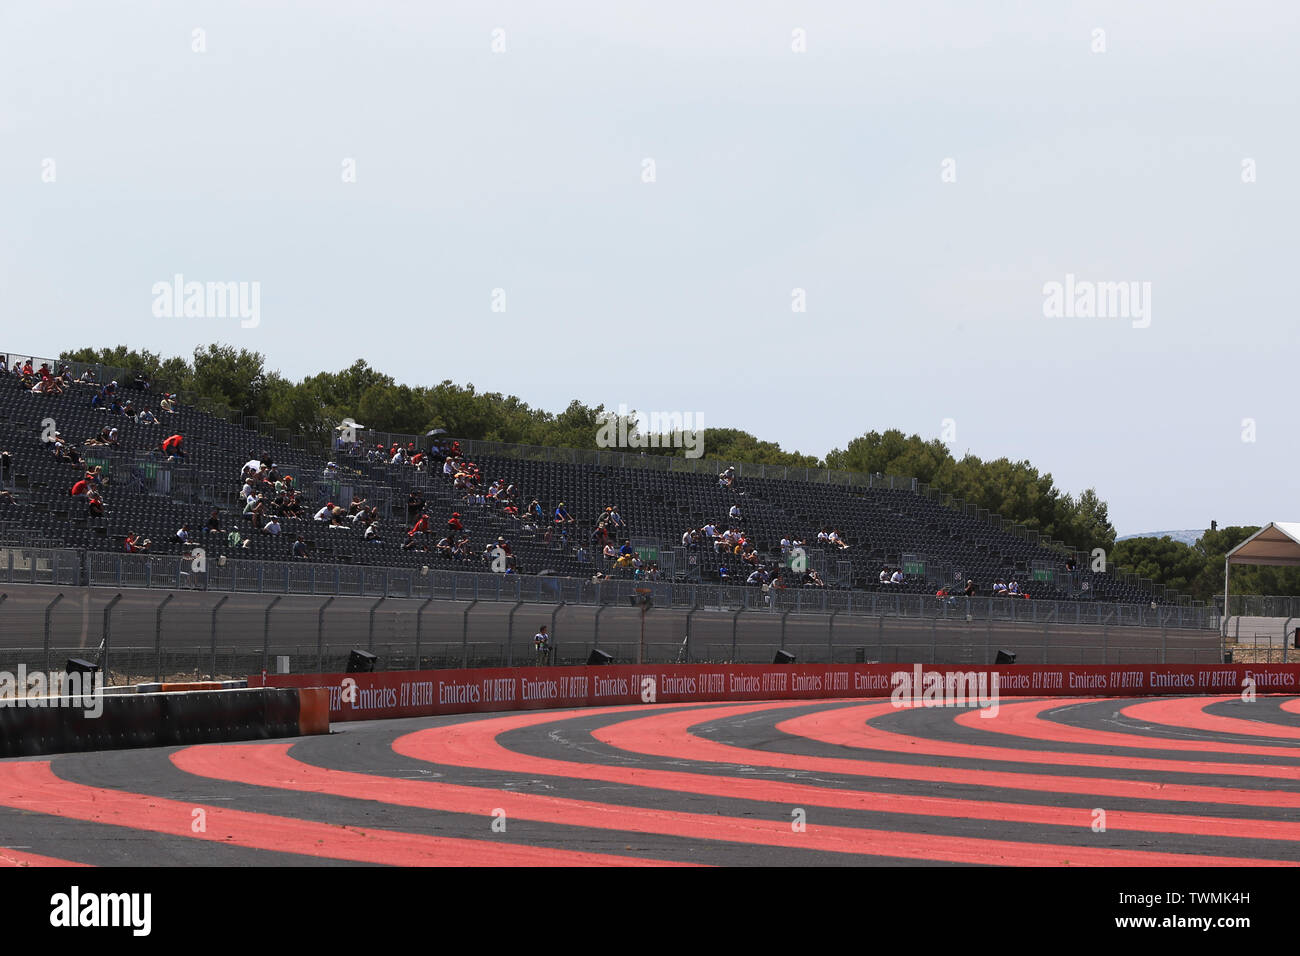 Marseille, France. 21st Jun 2019. FIA Formula 1 Grand Prix of France, practice sessions; Fans around the circuit, empty seats Credit: Action Plus Sports Images/Alamy Live News Stock Photo